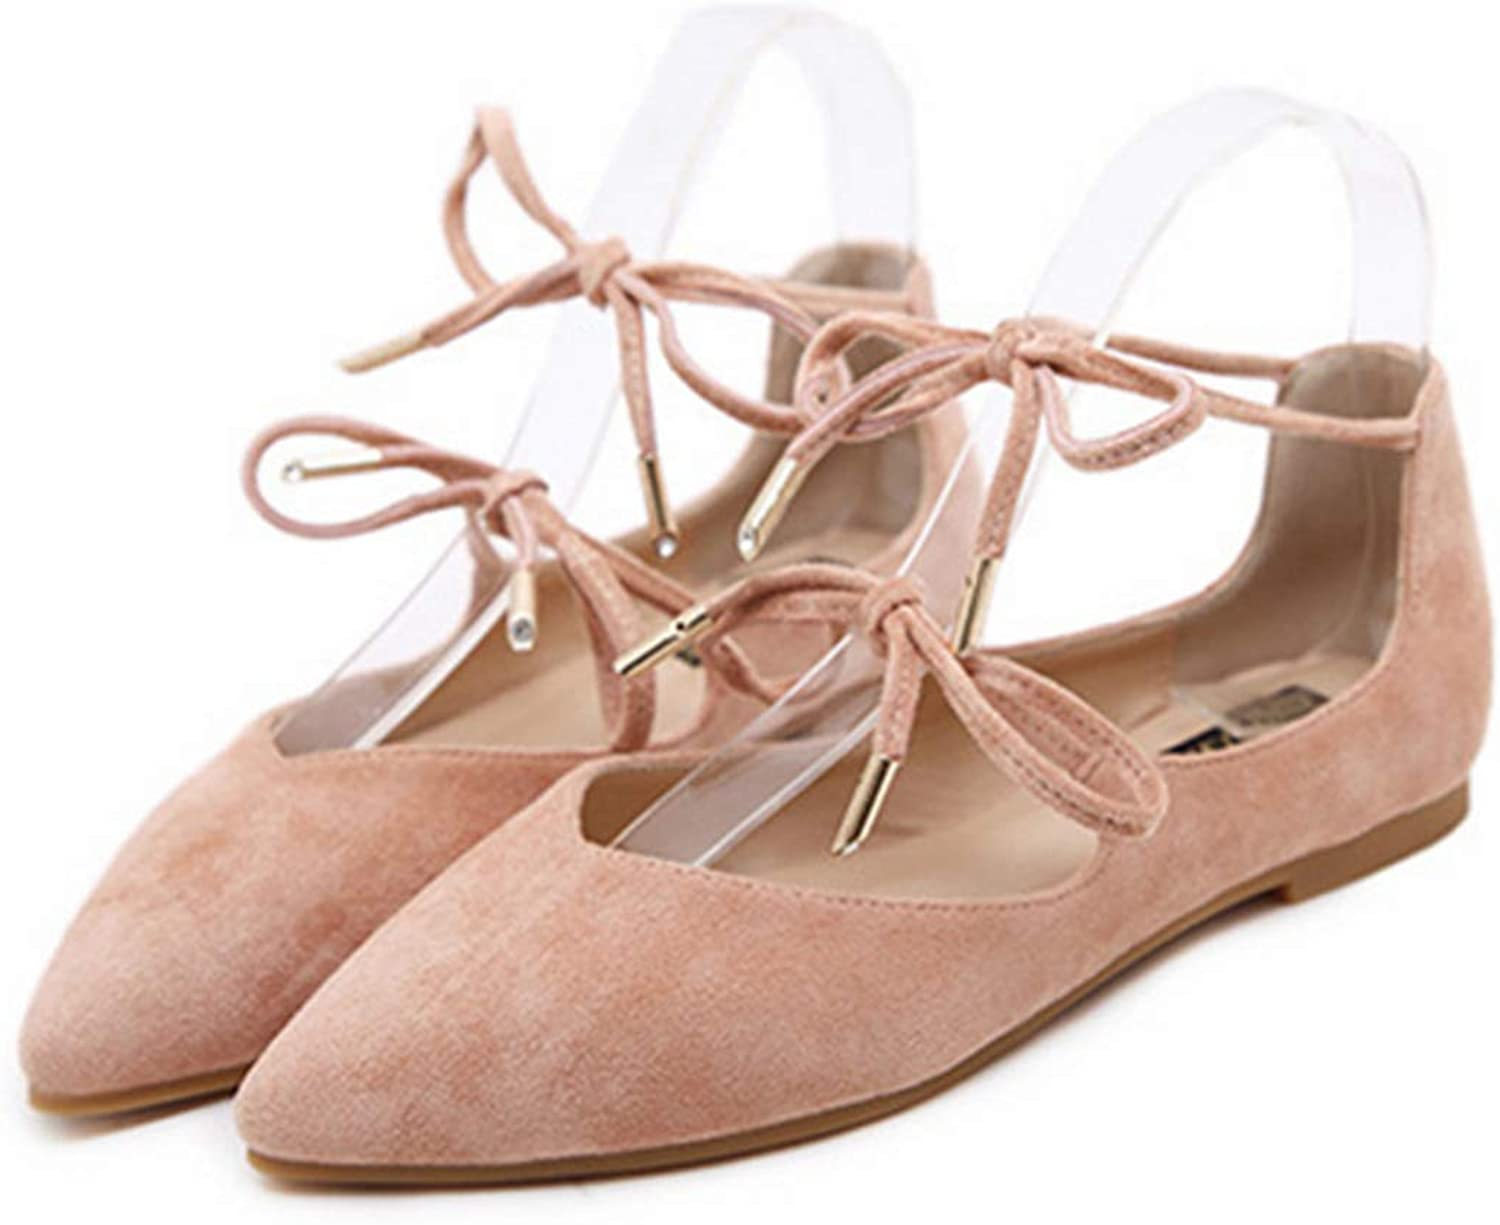 Women Flats, Pointed Toe Loafers Ballerina Ballet Slip On shoes